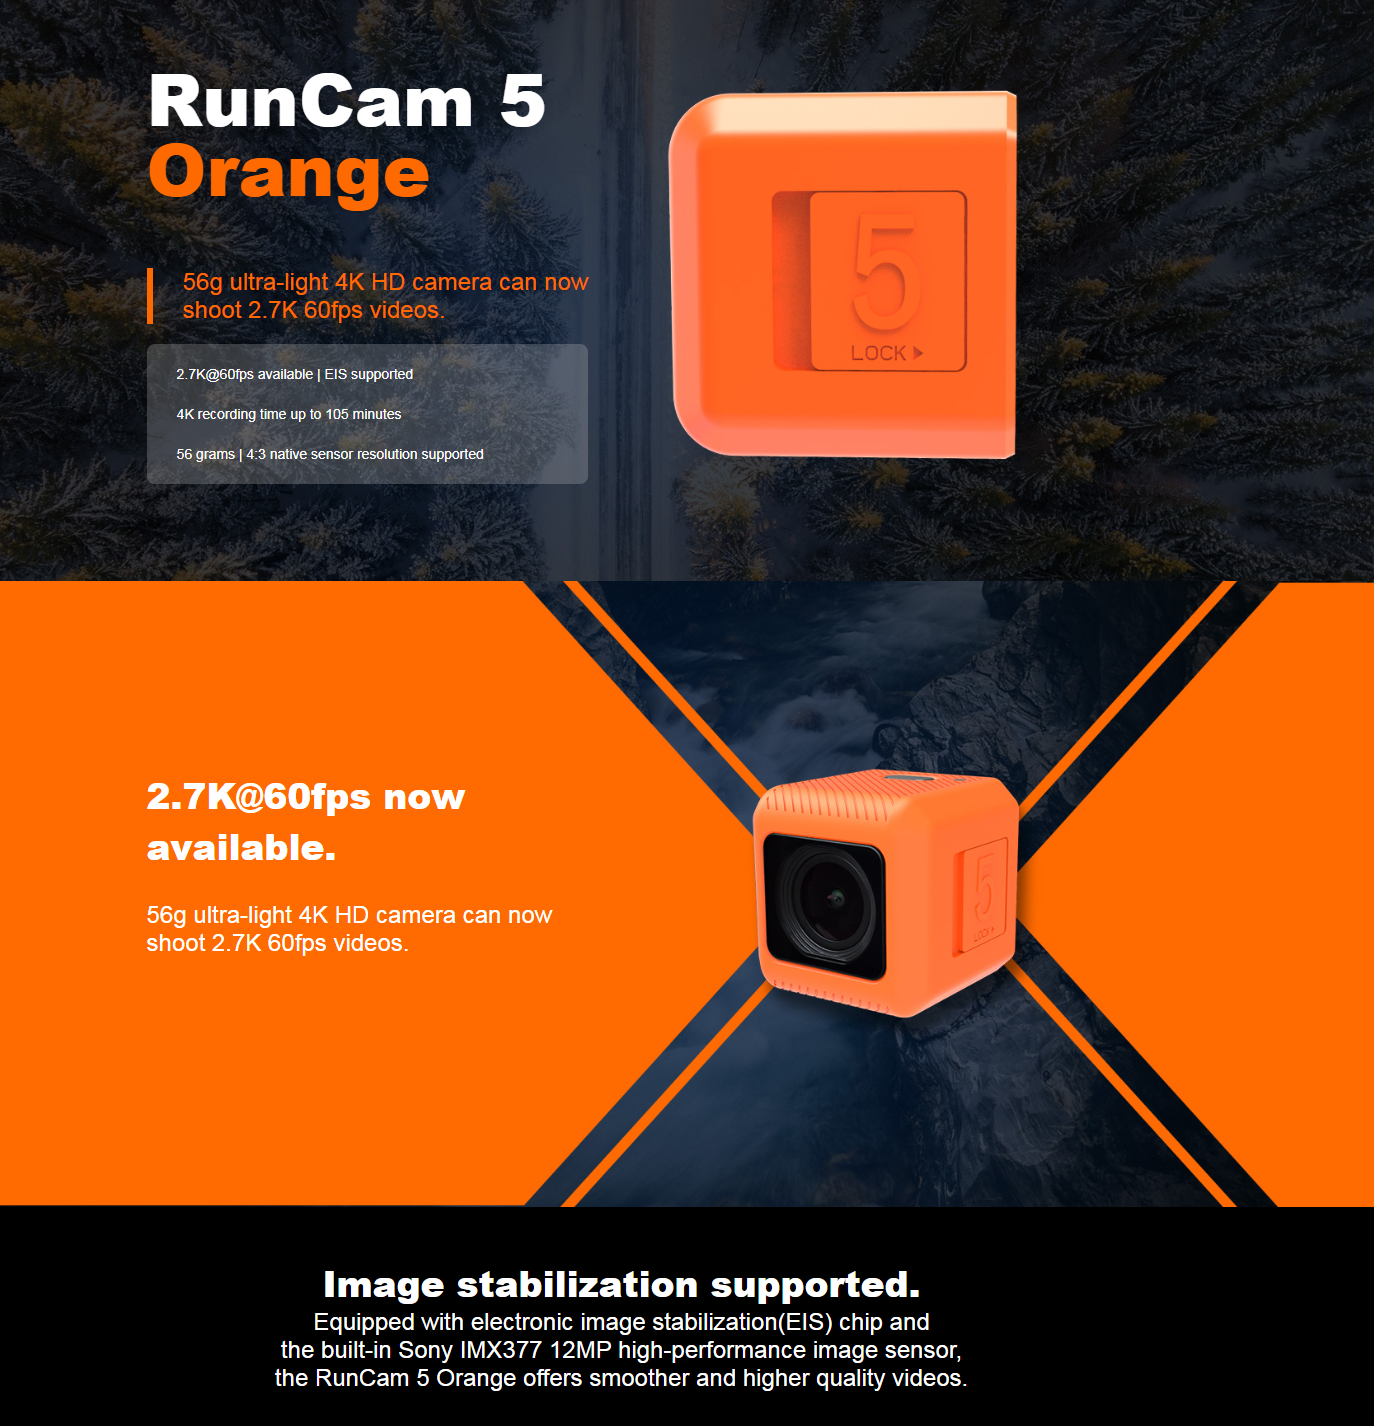 RunCam 5 Orange 12MP 4:3 145°FOV 56g Ultra-light 4K HD FPV Camera